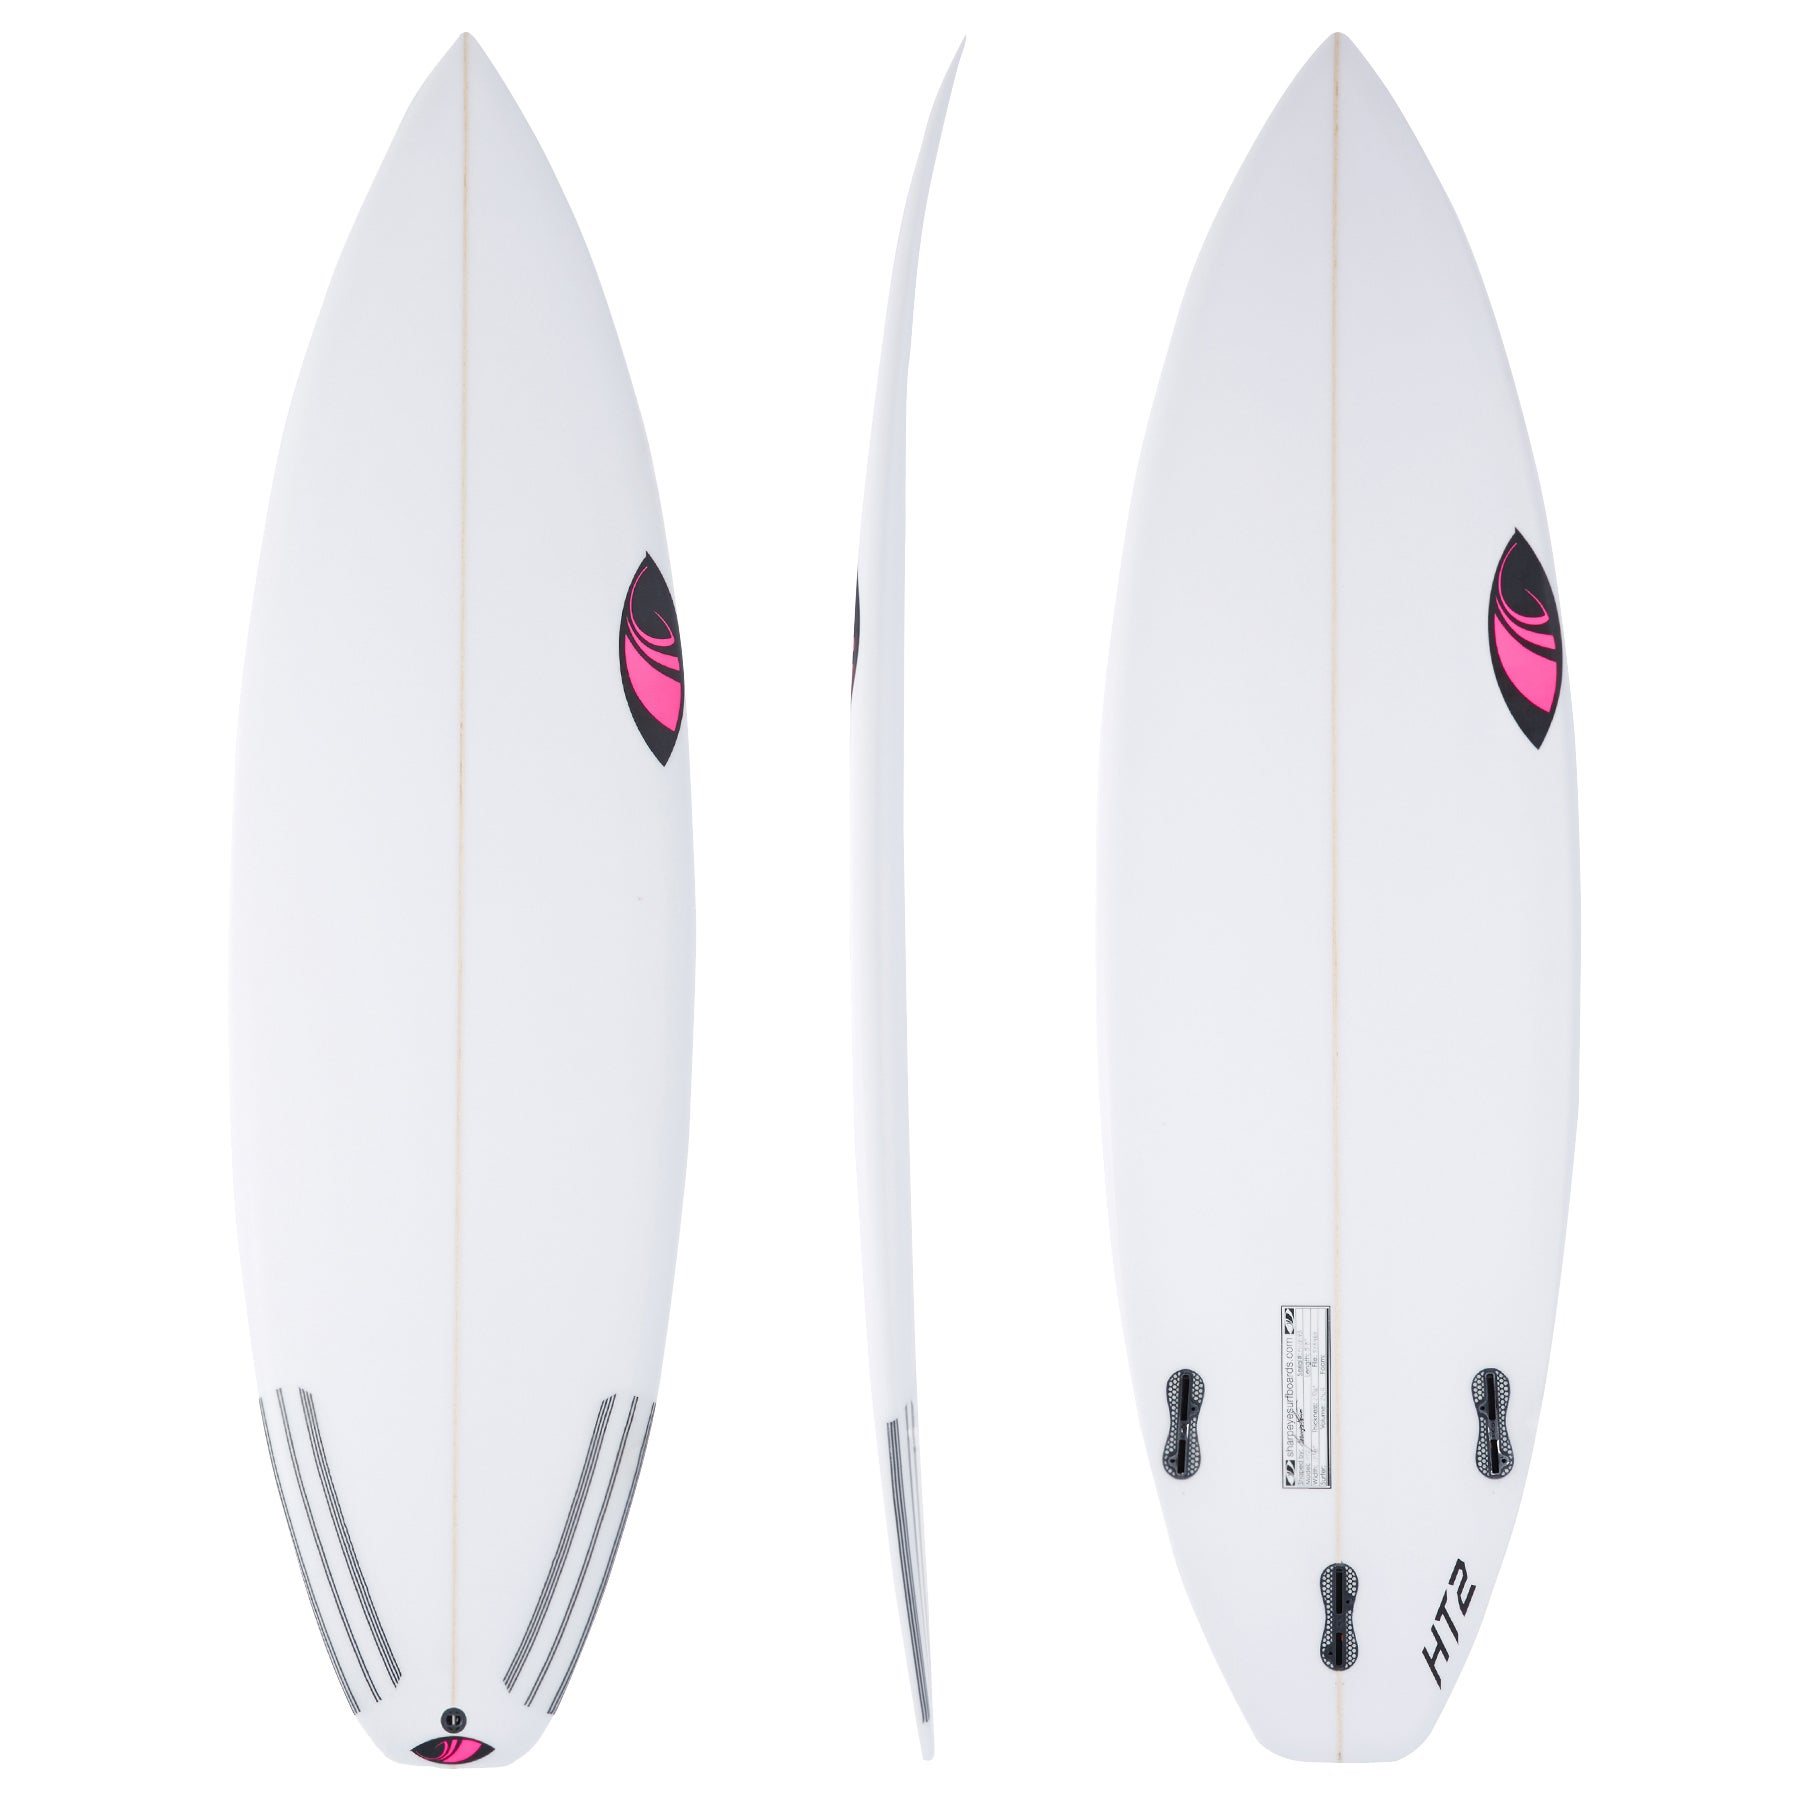 Disponible Eye Surfboards Sur Sharp Surfdome K31JFTulc5